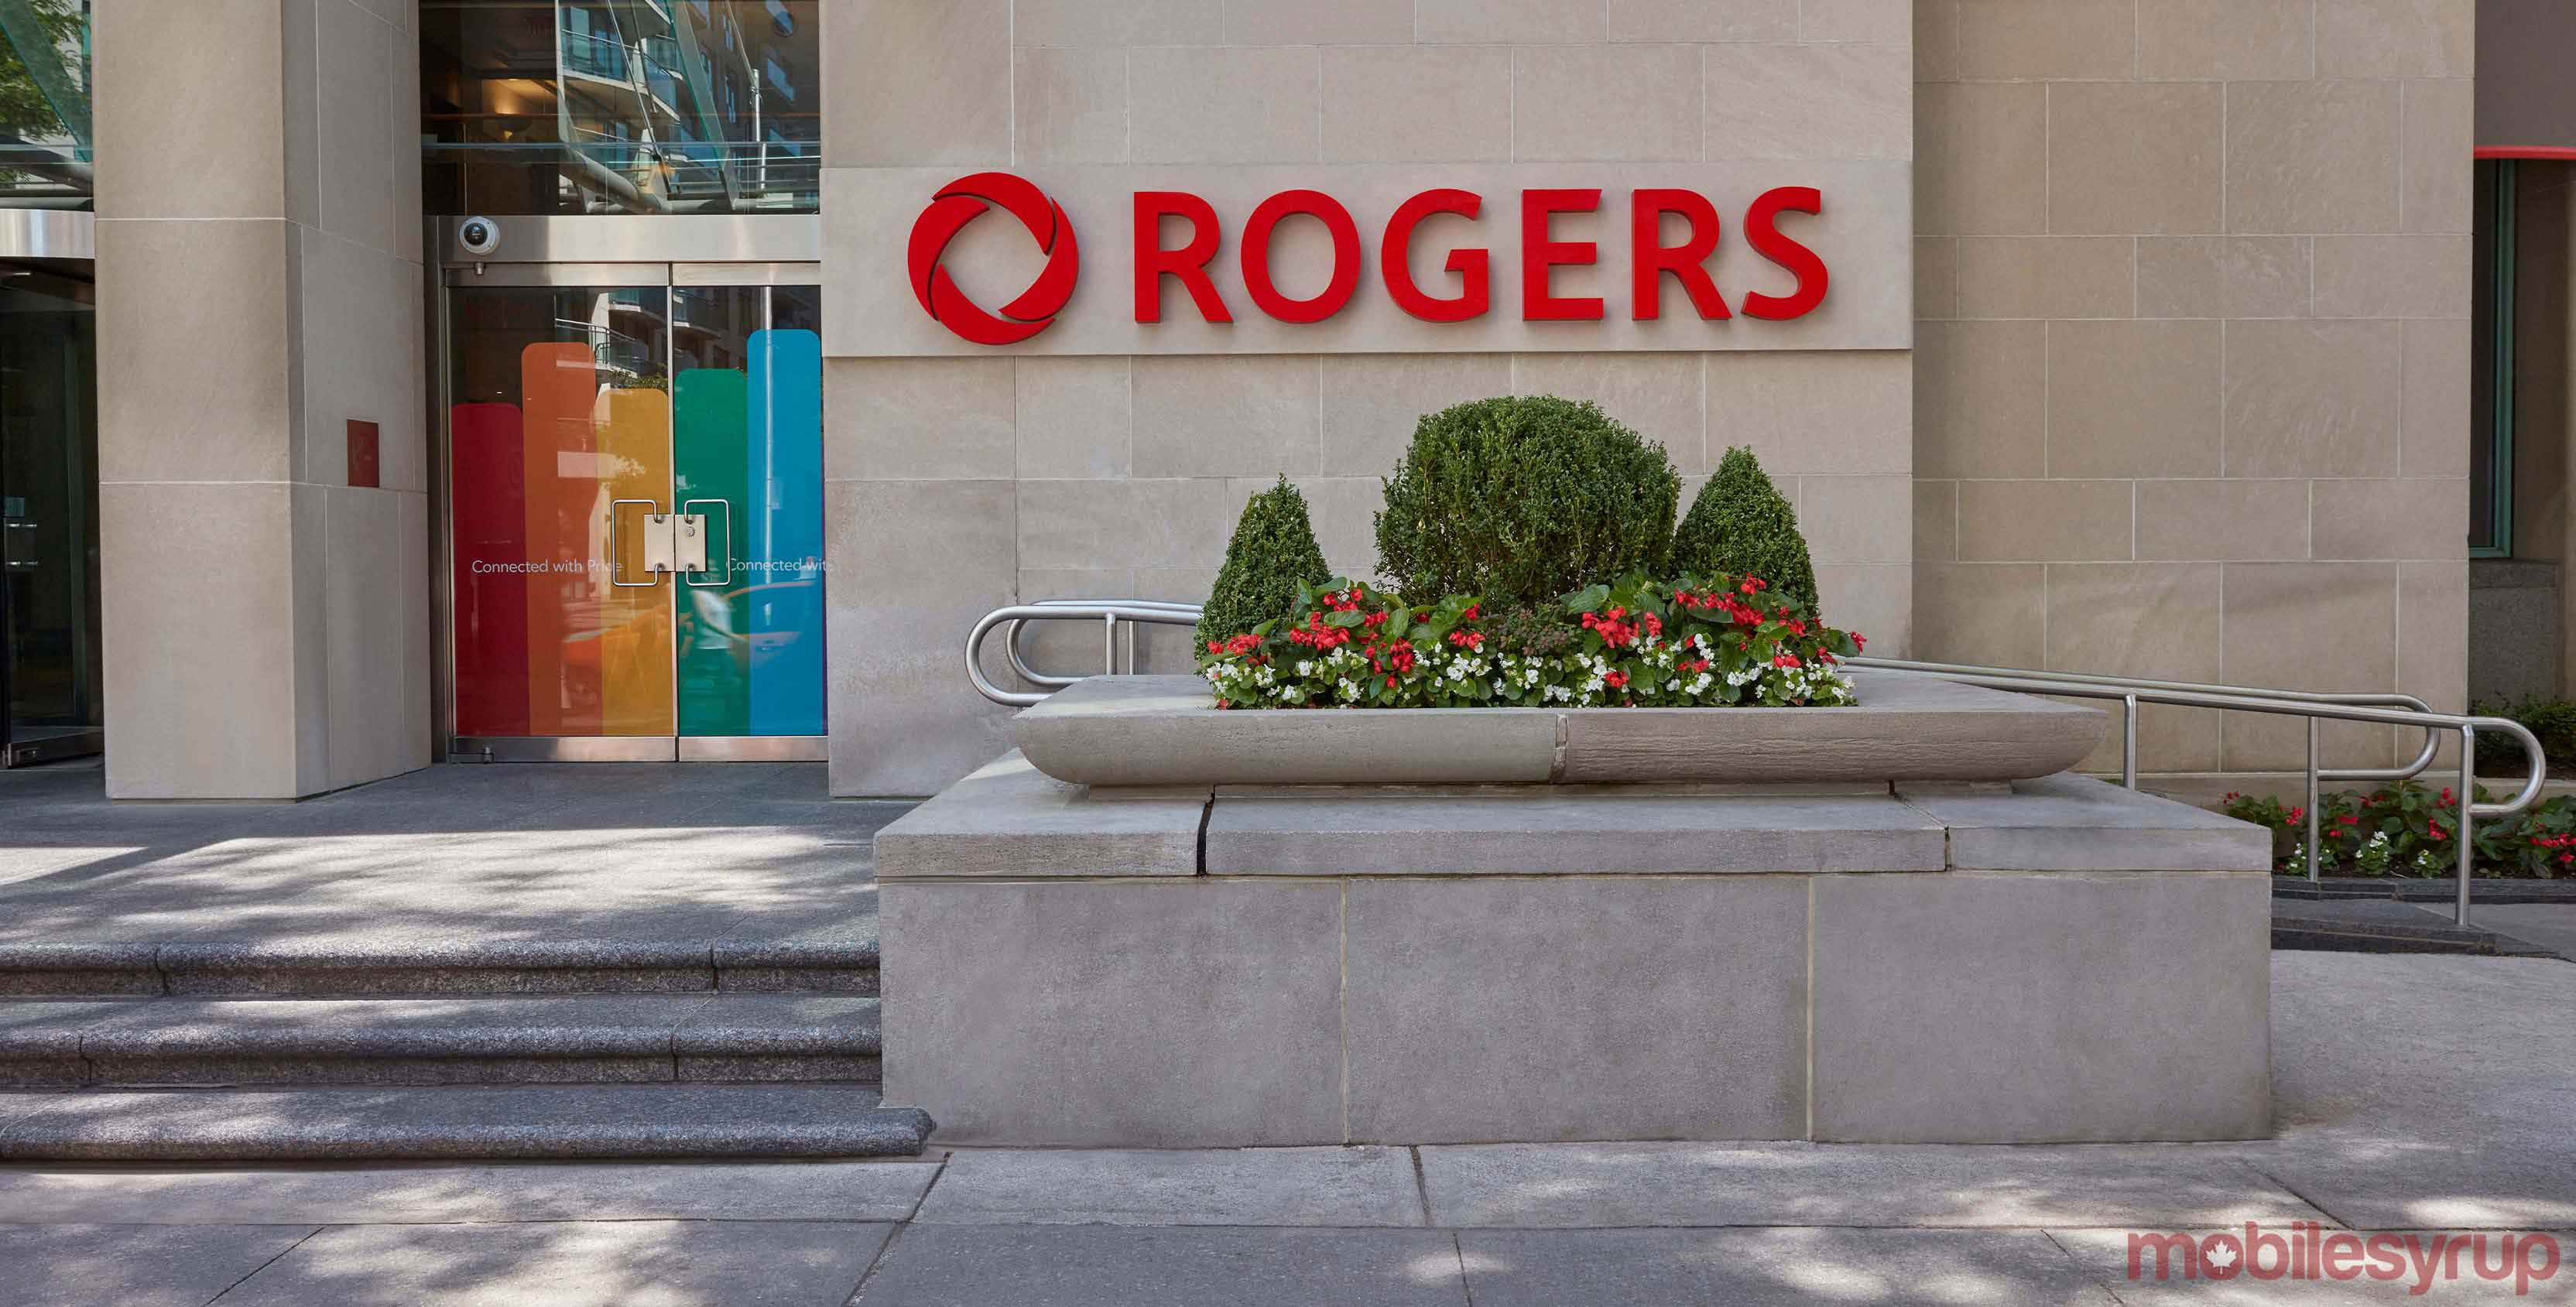 Rogers head office with logo